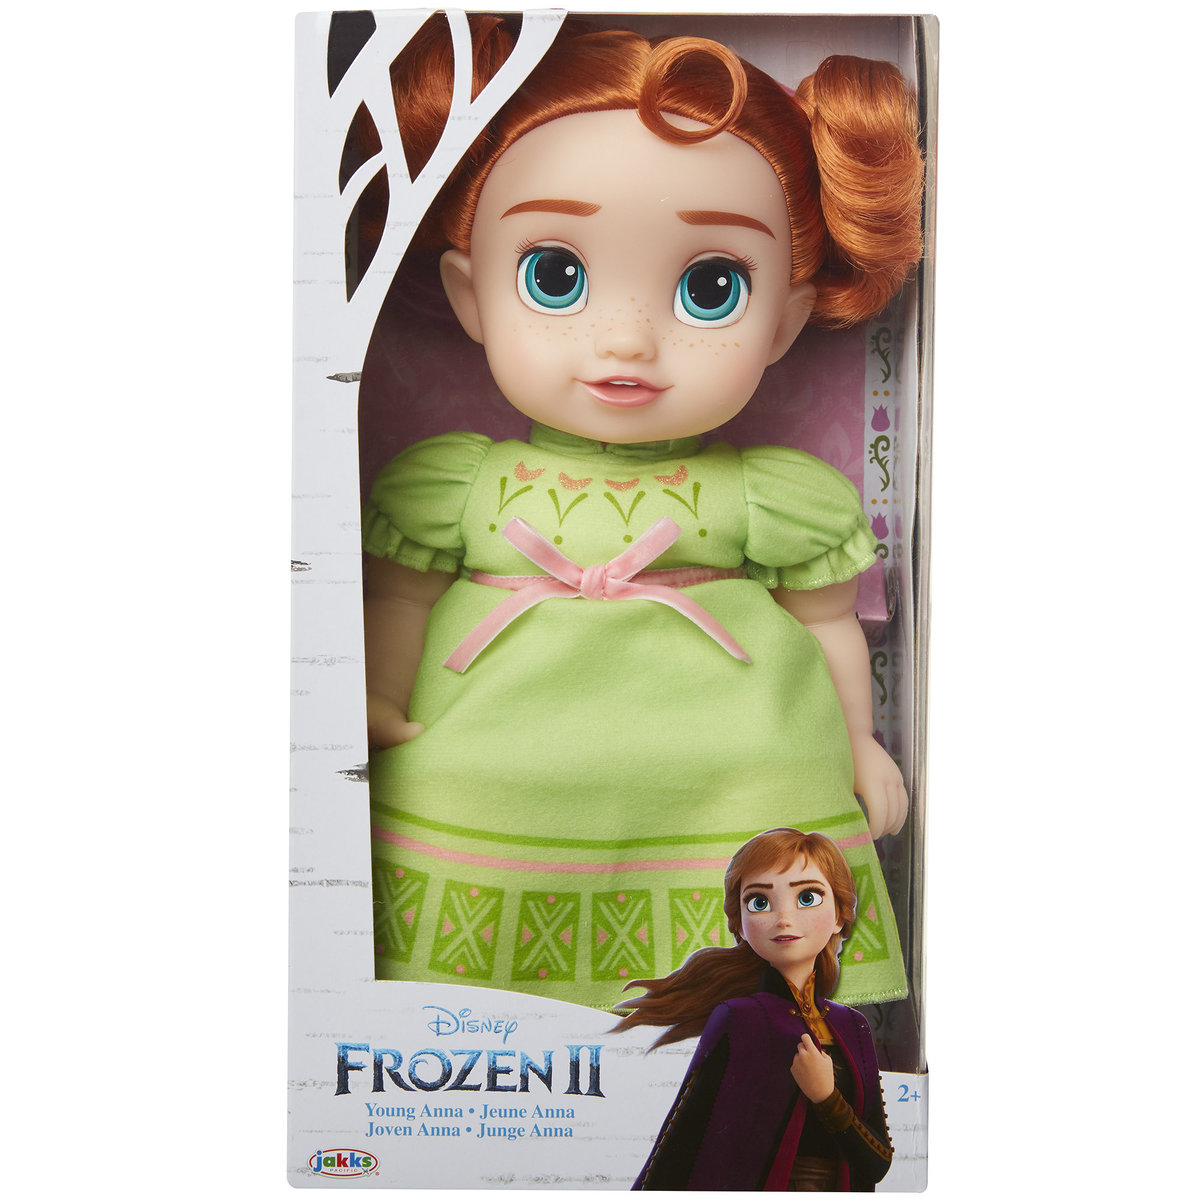 Disney Frozen 2: Non-feature Young Anna Doll (window box)(Licensed by Disney)